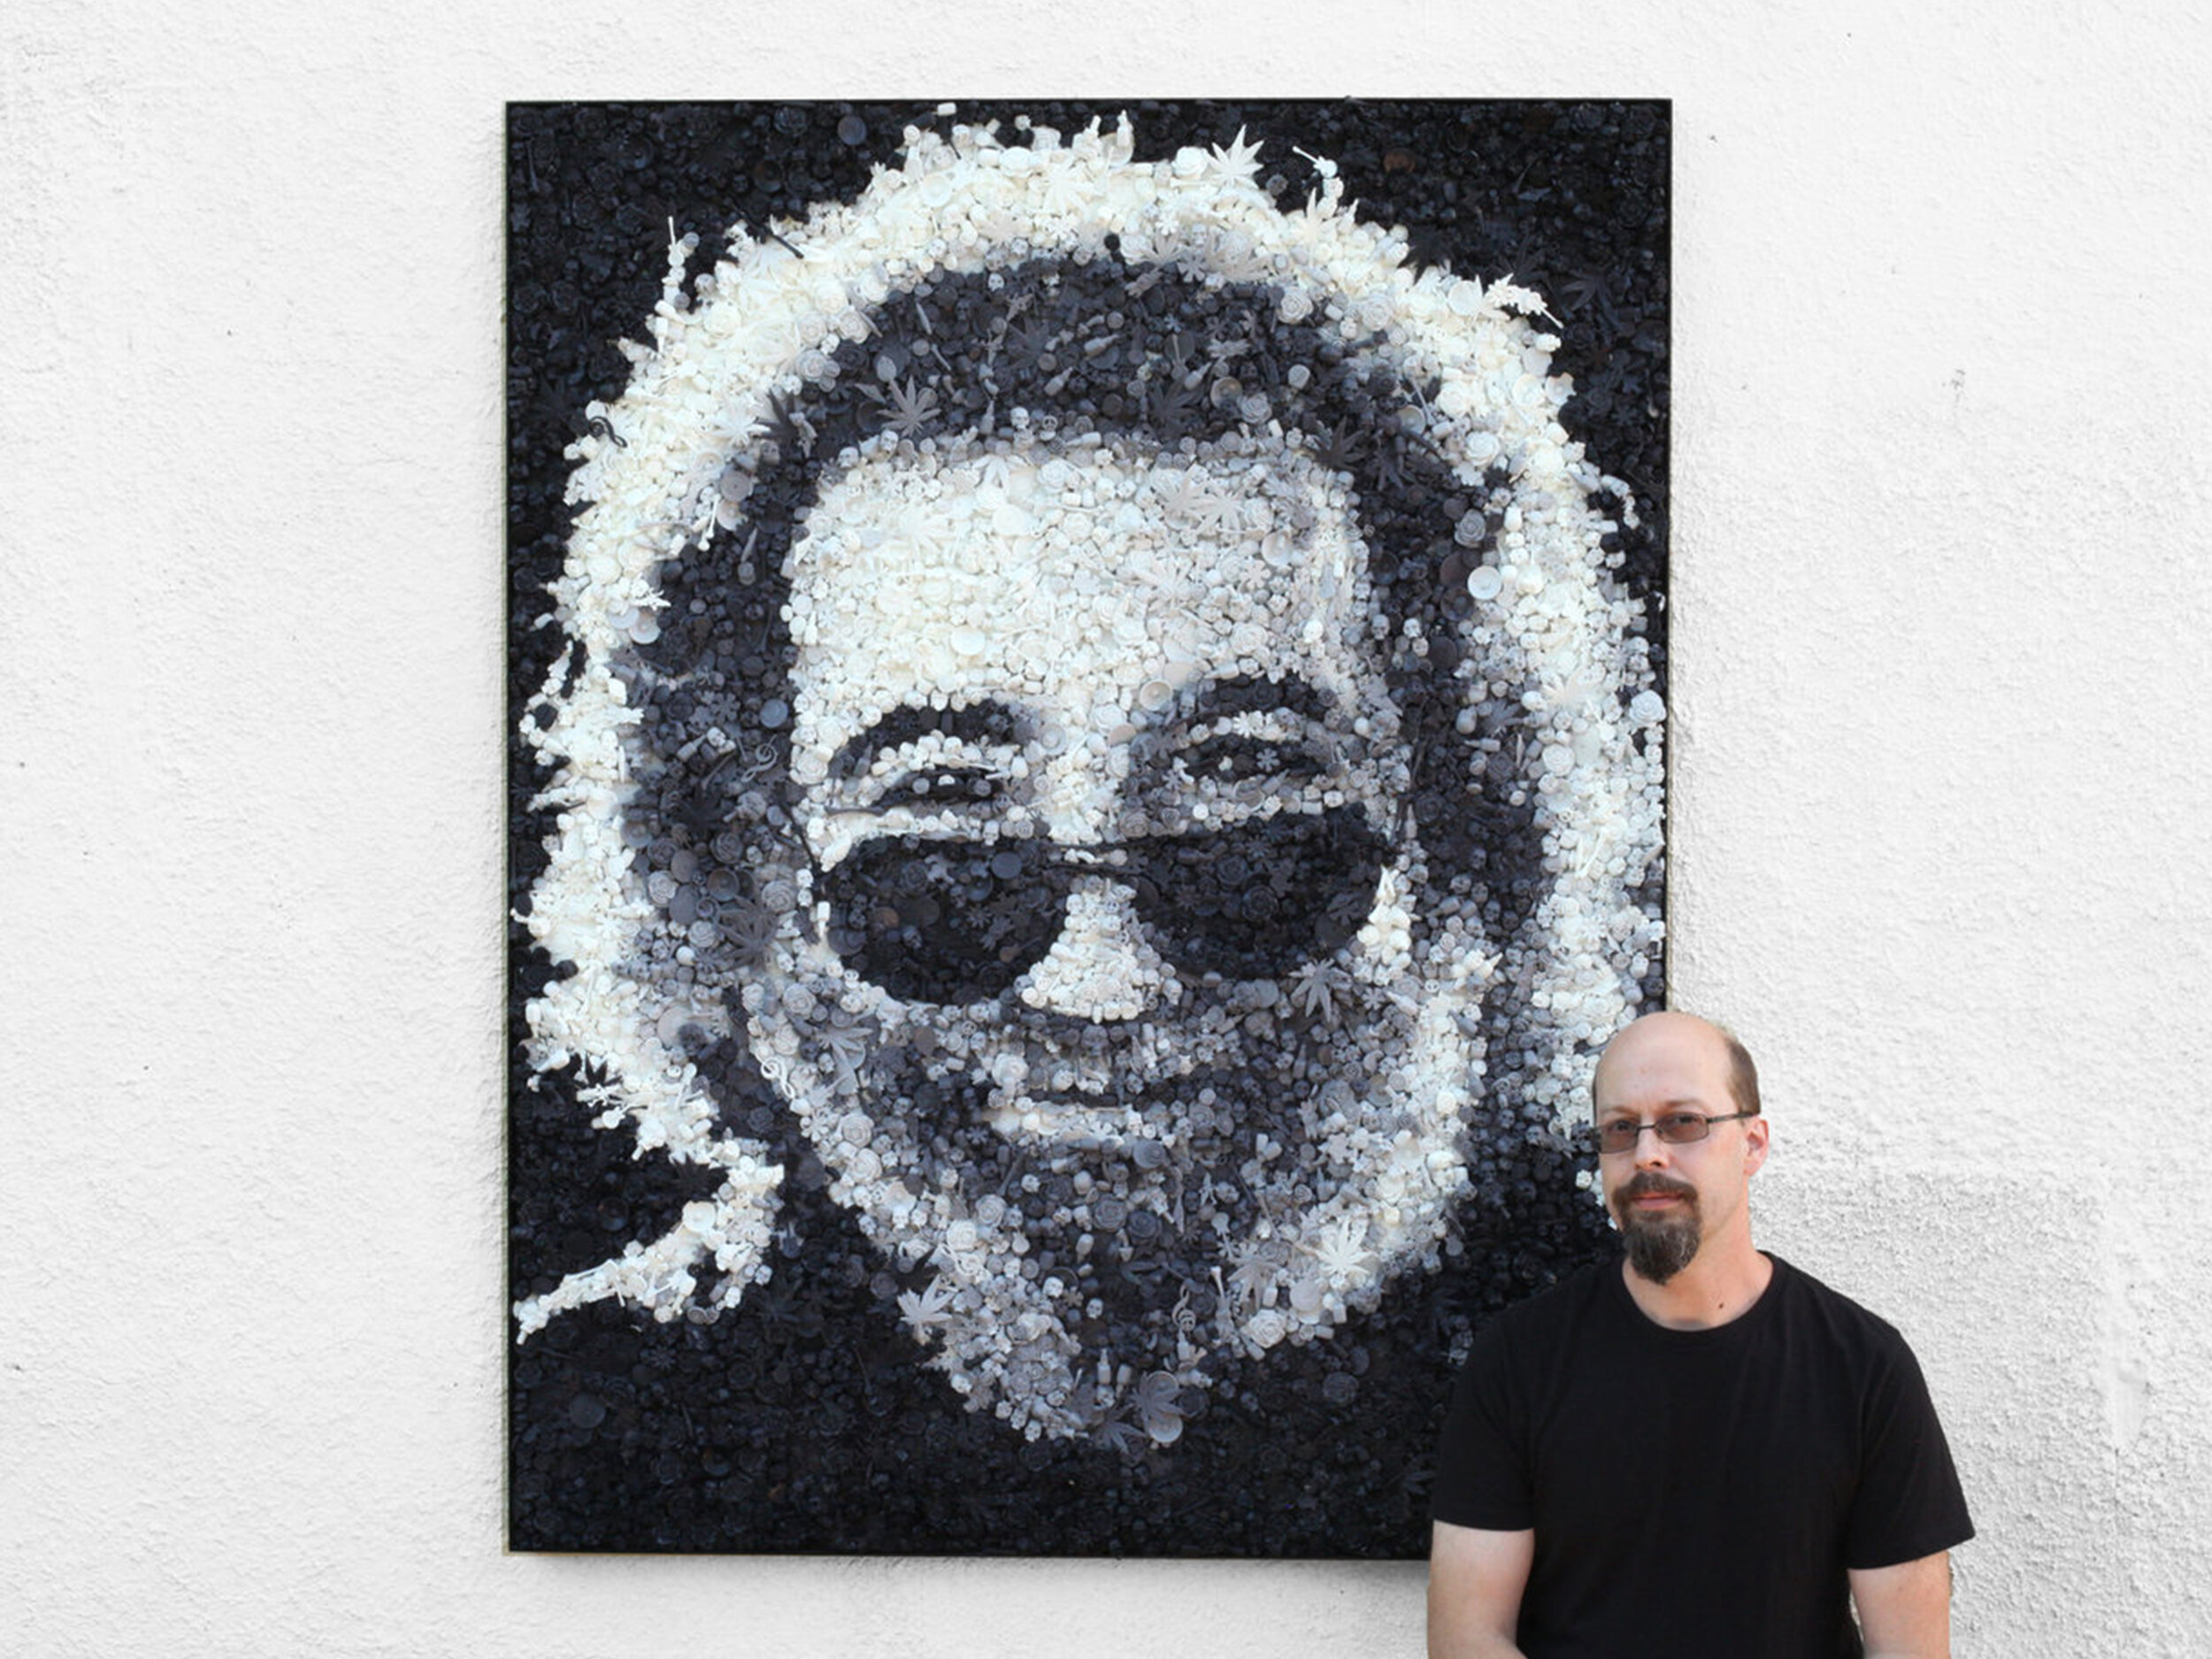 touch of grey - 25,000 hand cast pieces of imagery from the life of Jerry Garcia and the Grateful Dead